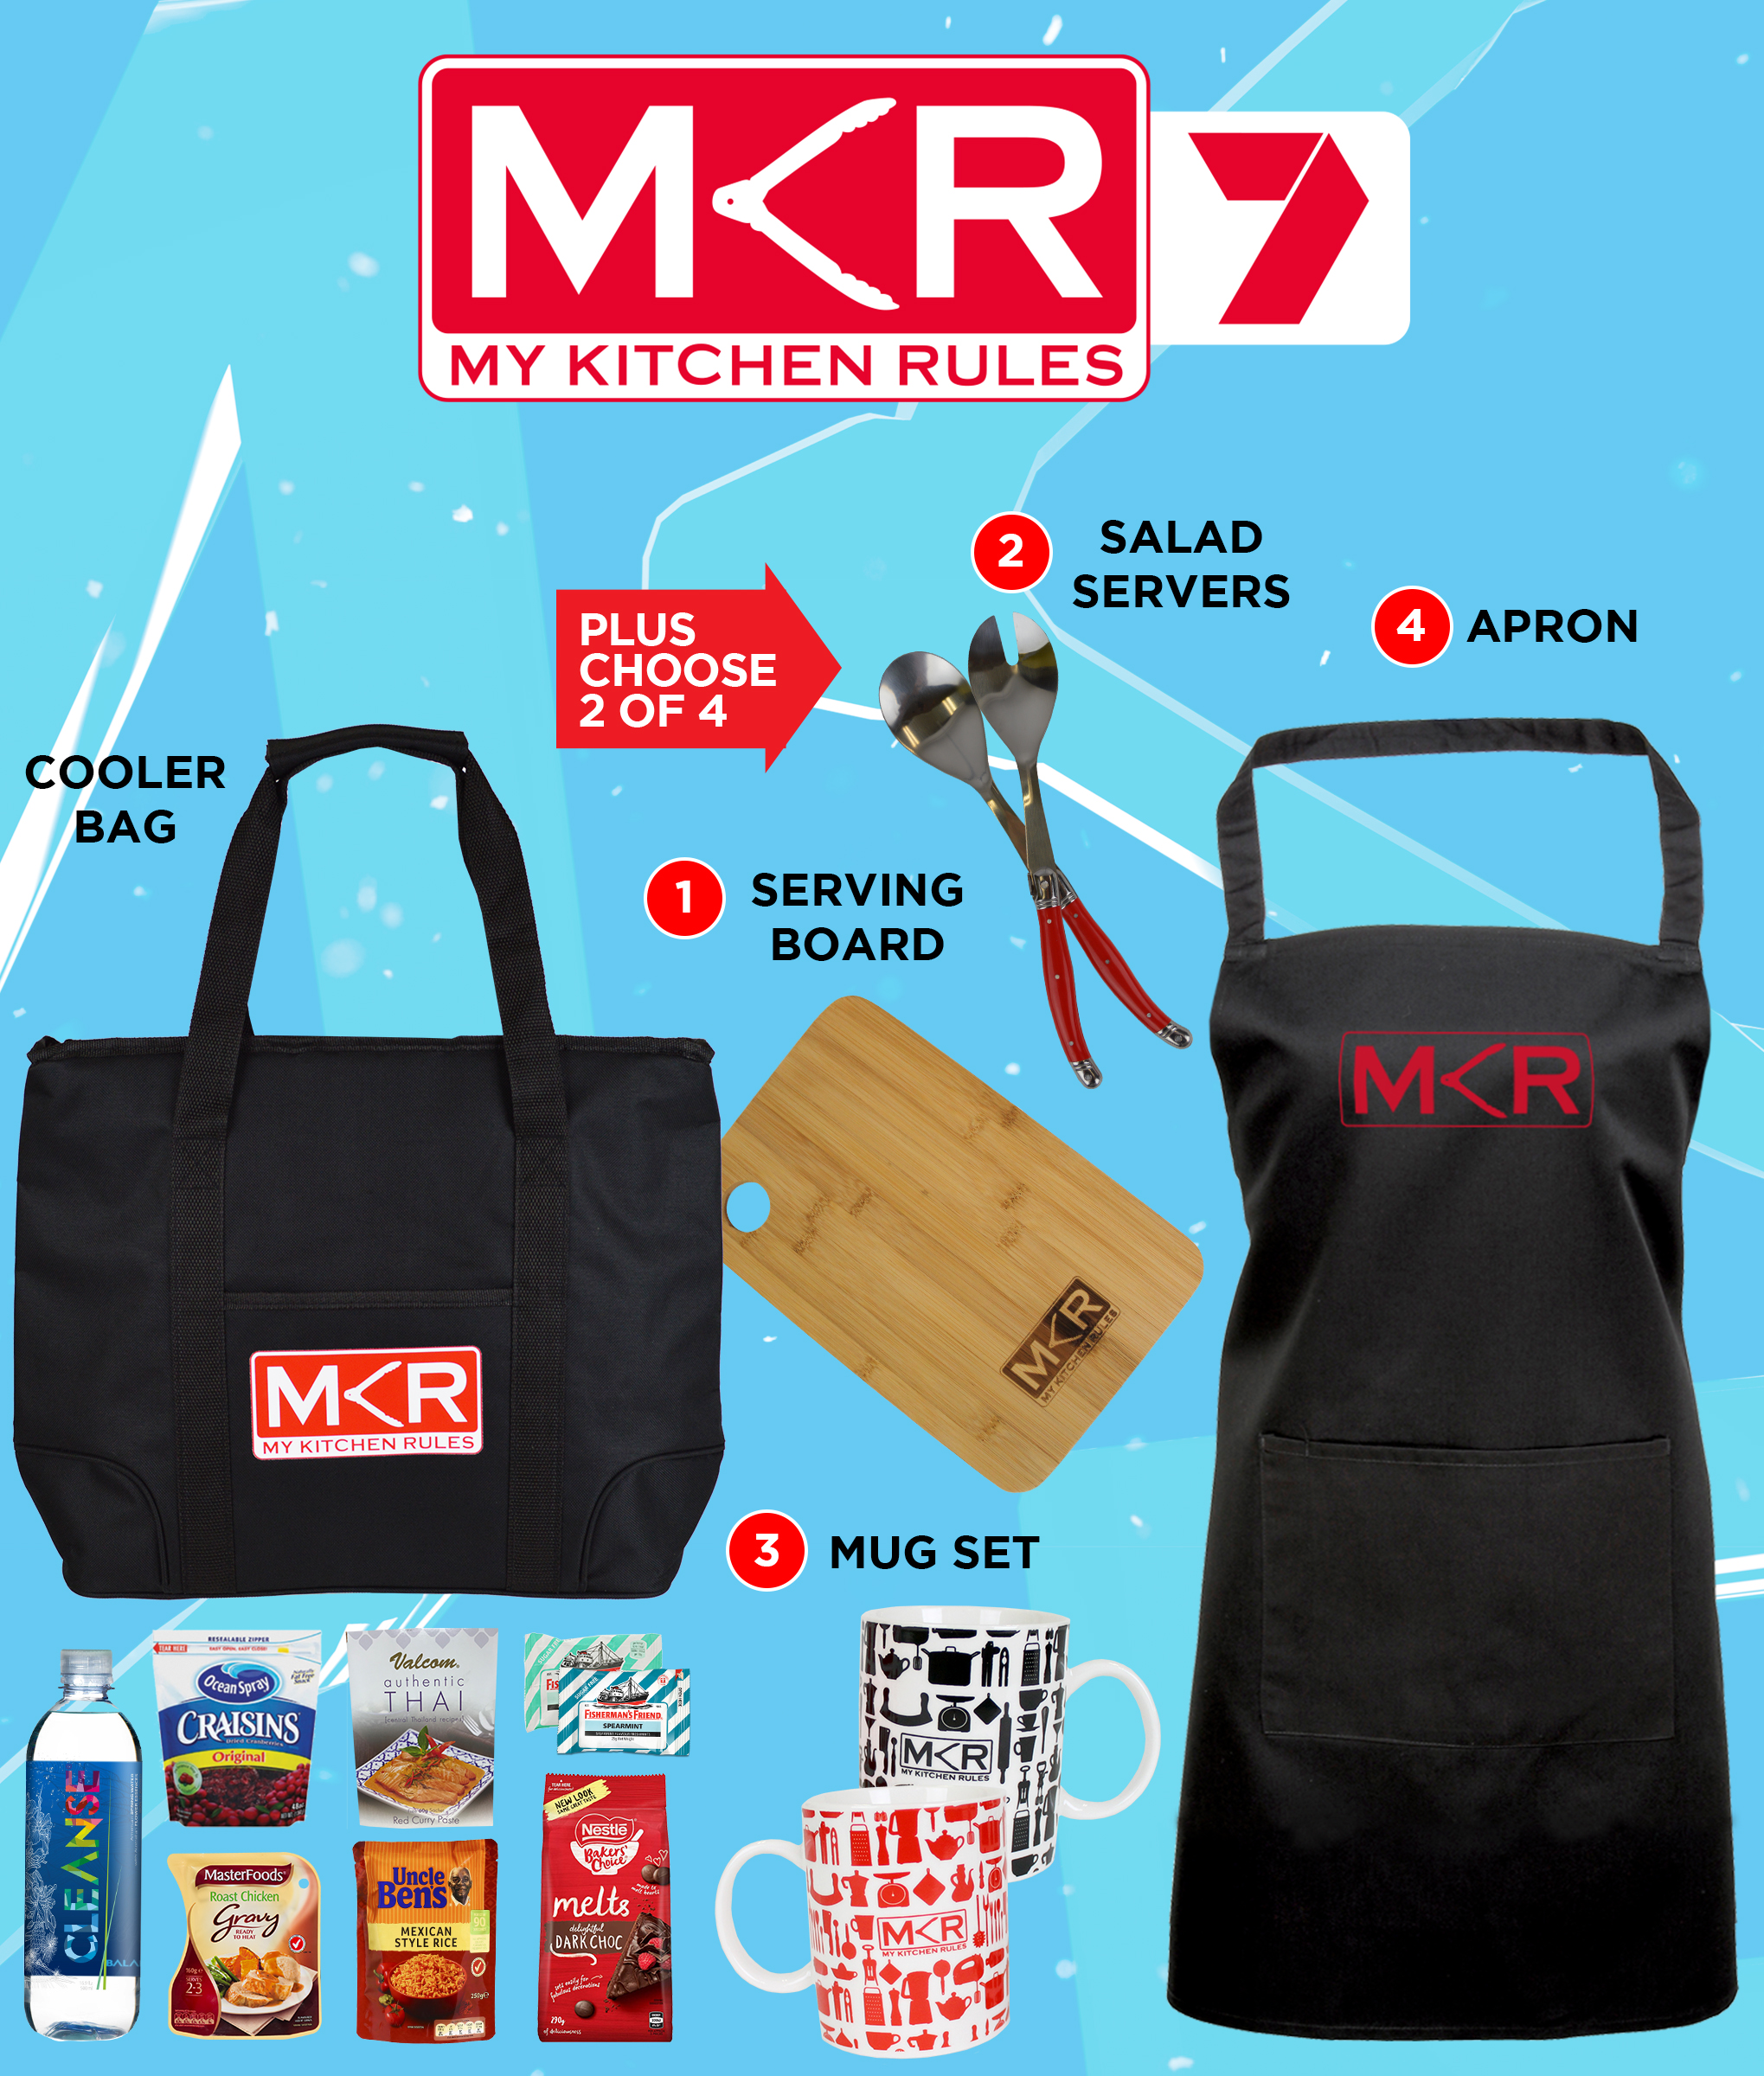 My kitchen rules showbag easter show 2018 chicane showbags for Y kitchen rules 2018